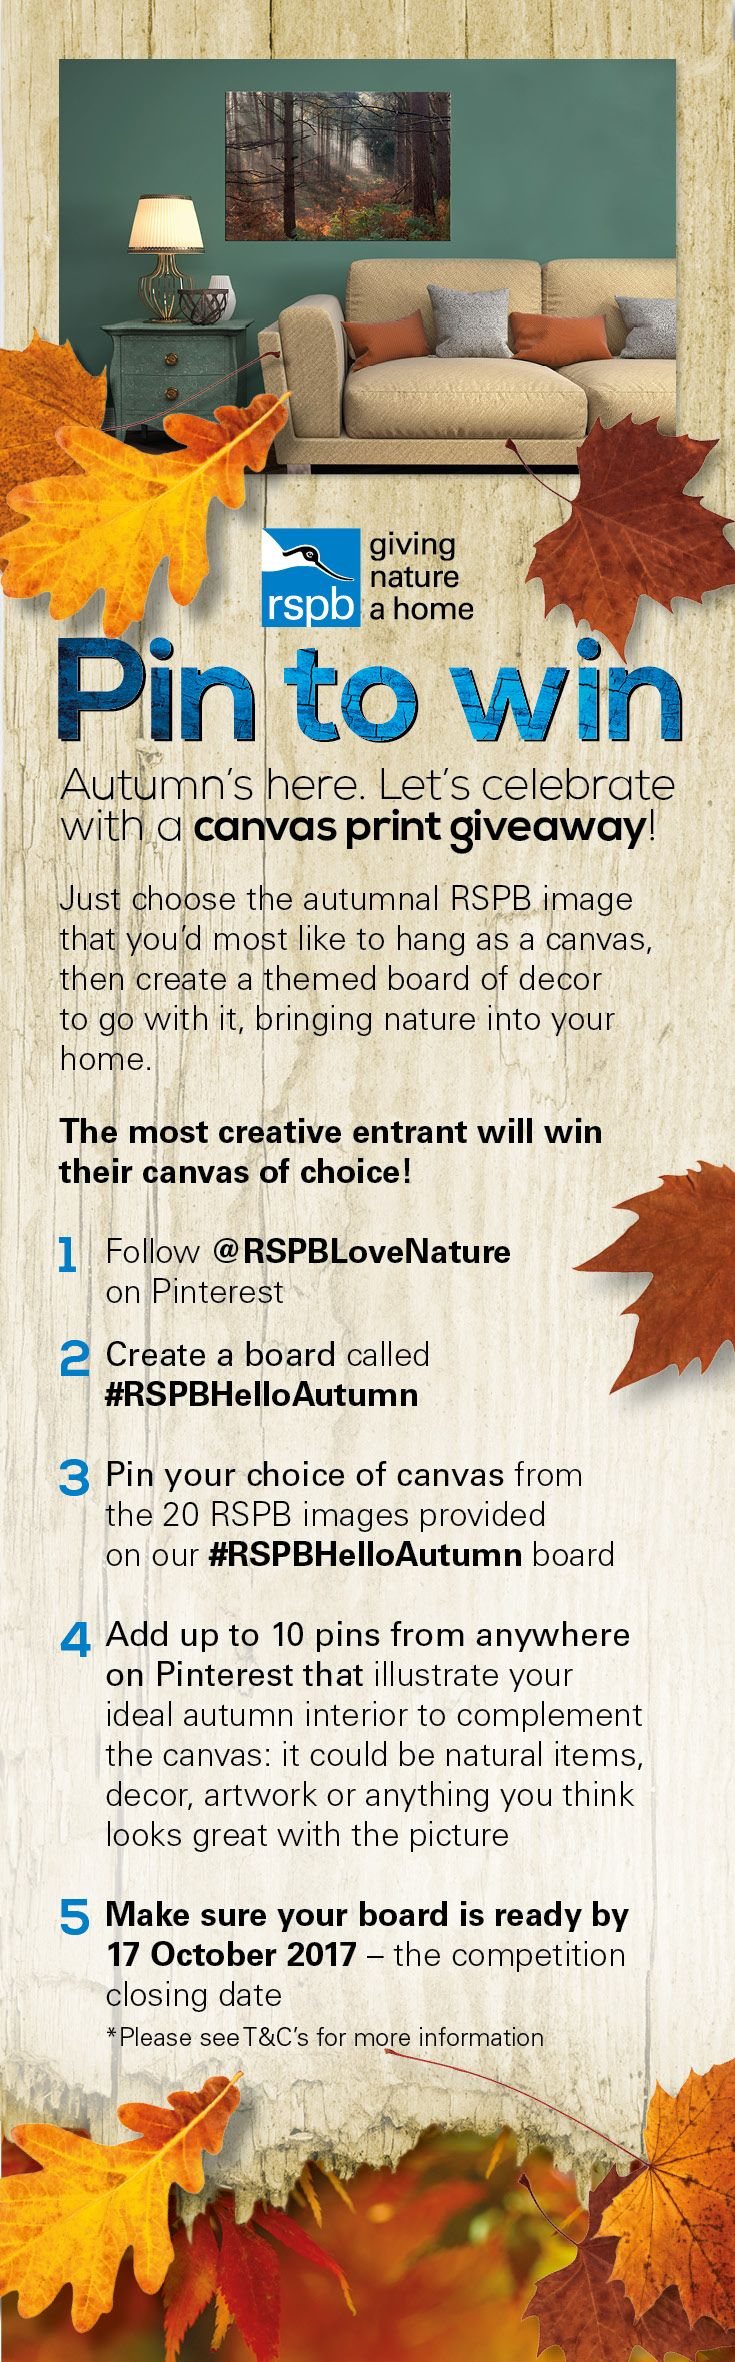 Pin to Win a gorgeous canvas print worth up to £200 – simply create a #RSPBHelloAutumn Pinterest board, pin your choice of canvas from the 20 autumnal images provided on our #RSPBHelloAutumn board and then add in 10 or more pins that illustrate your ideal autumn interior. Closing date 17/10/2017. 2017, Contest, Fun, Photography, Home Inspiration, Giveaway, Competition, Prizes, Autumn, Decor, Aesthetic